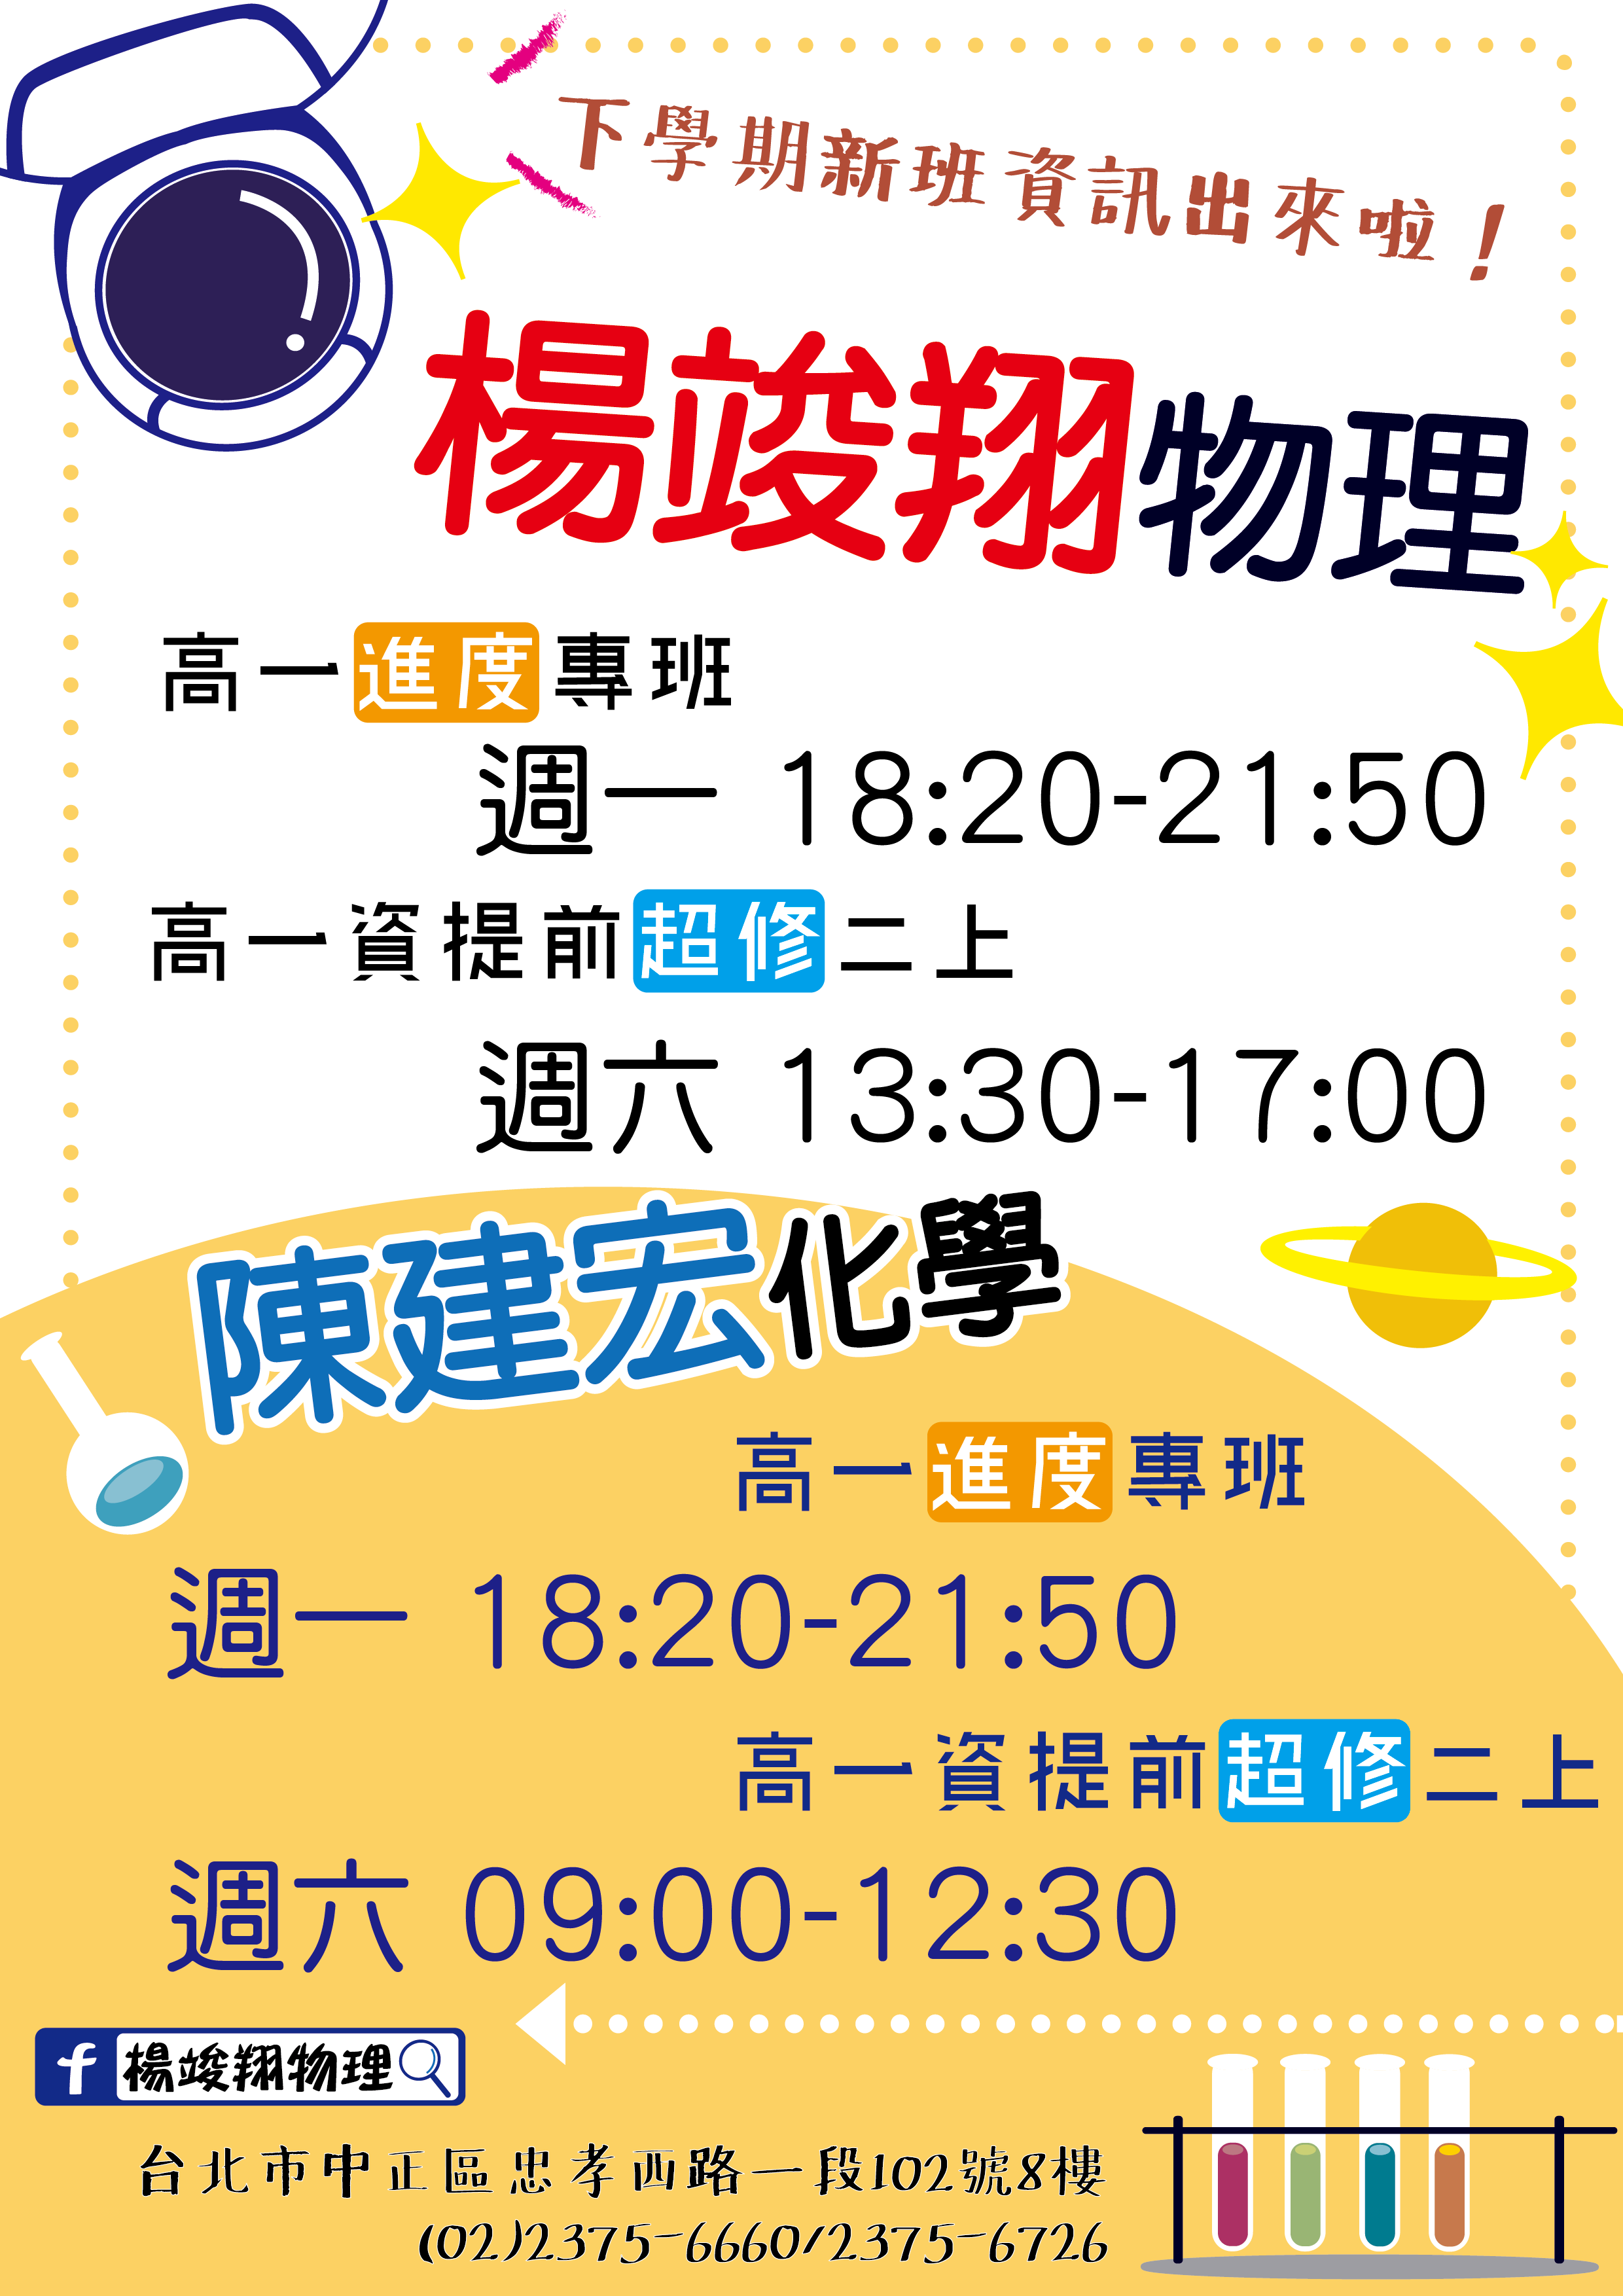 ypcmanager 首圖